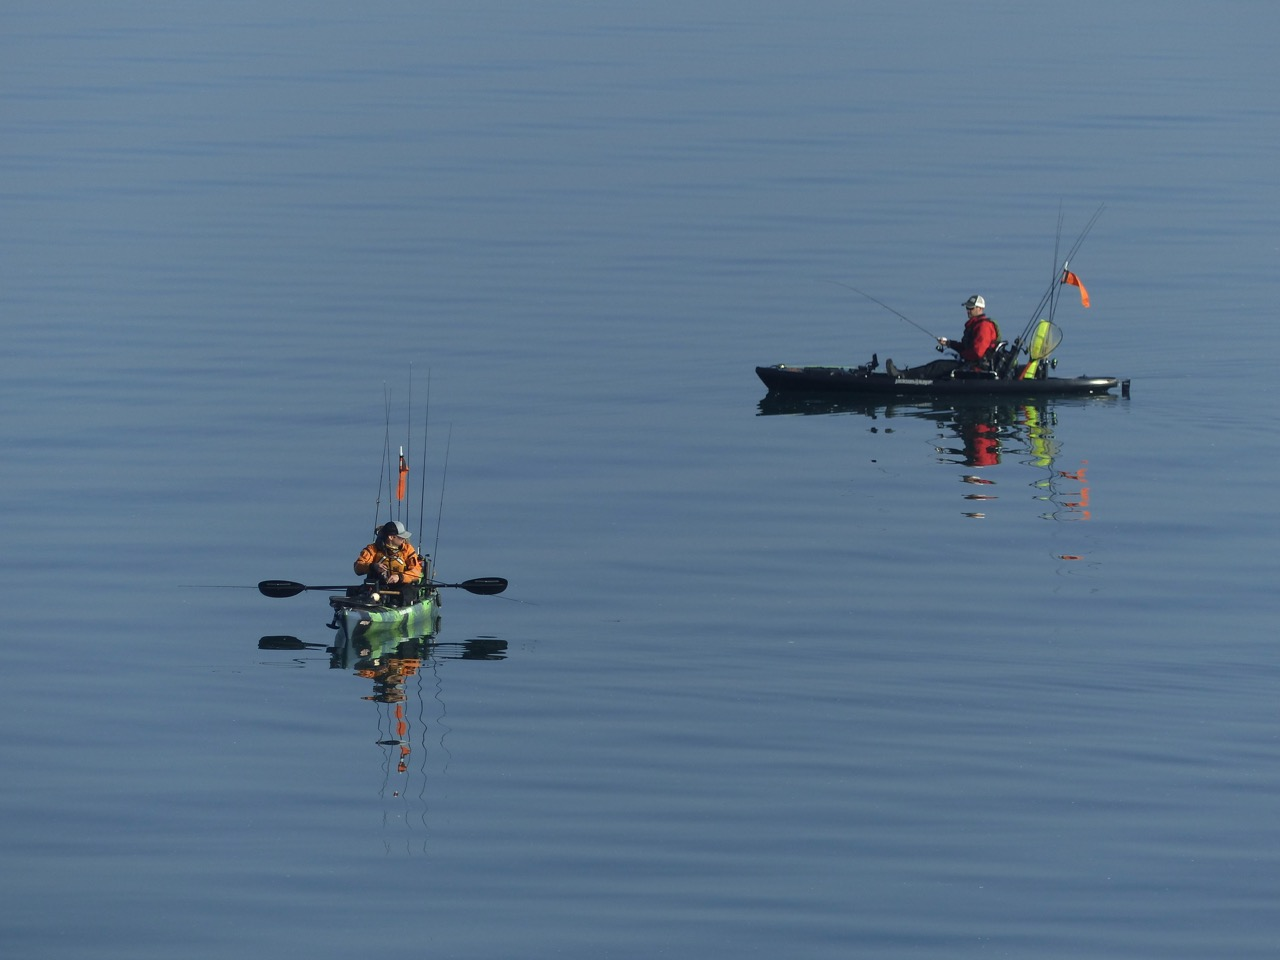 anglers relaxing in kayaks on Lake Erie